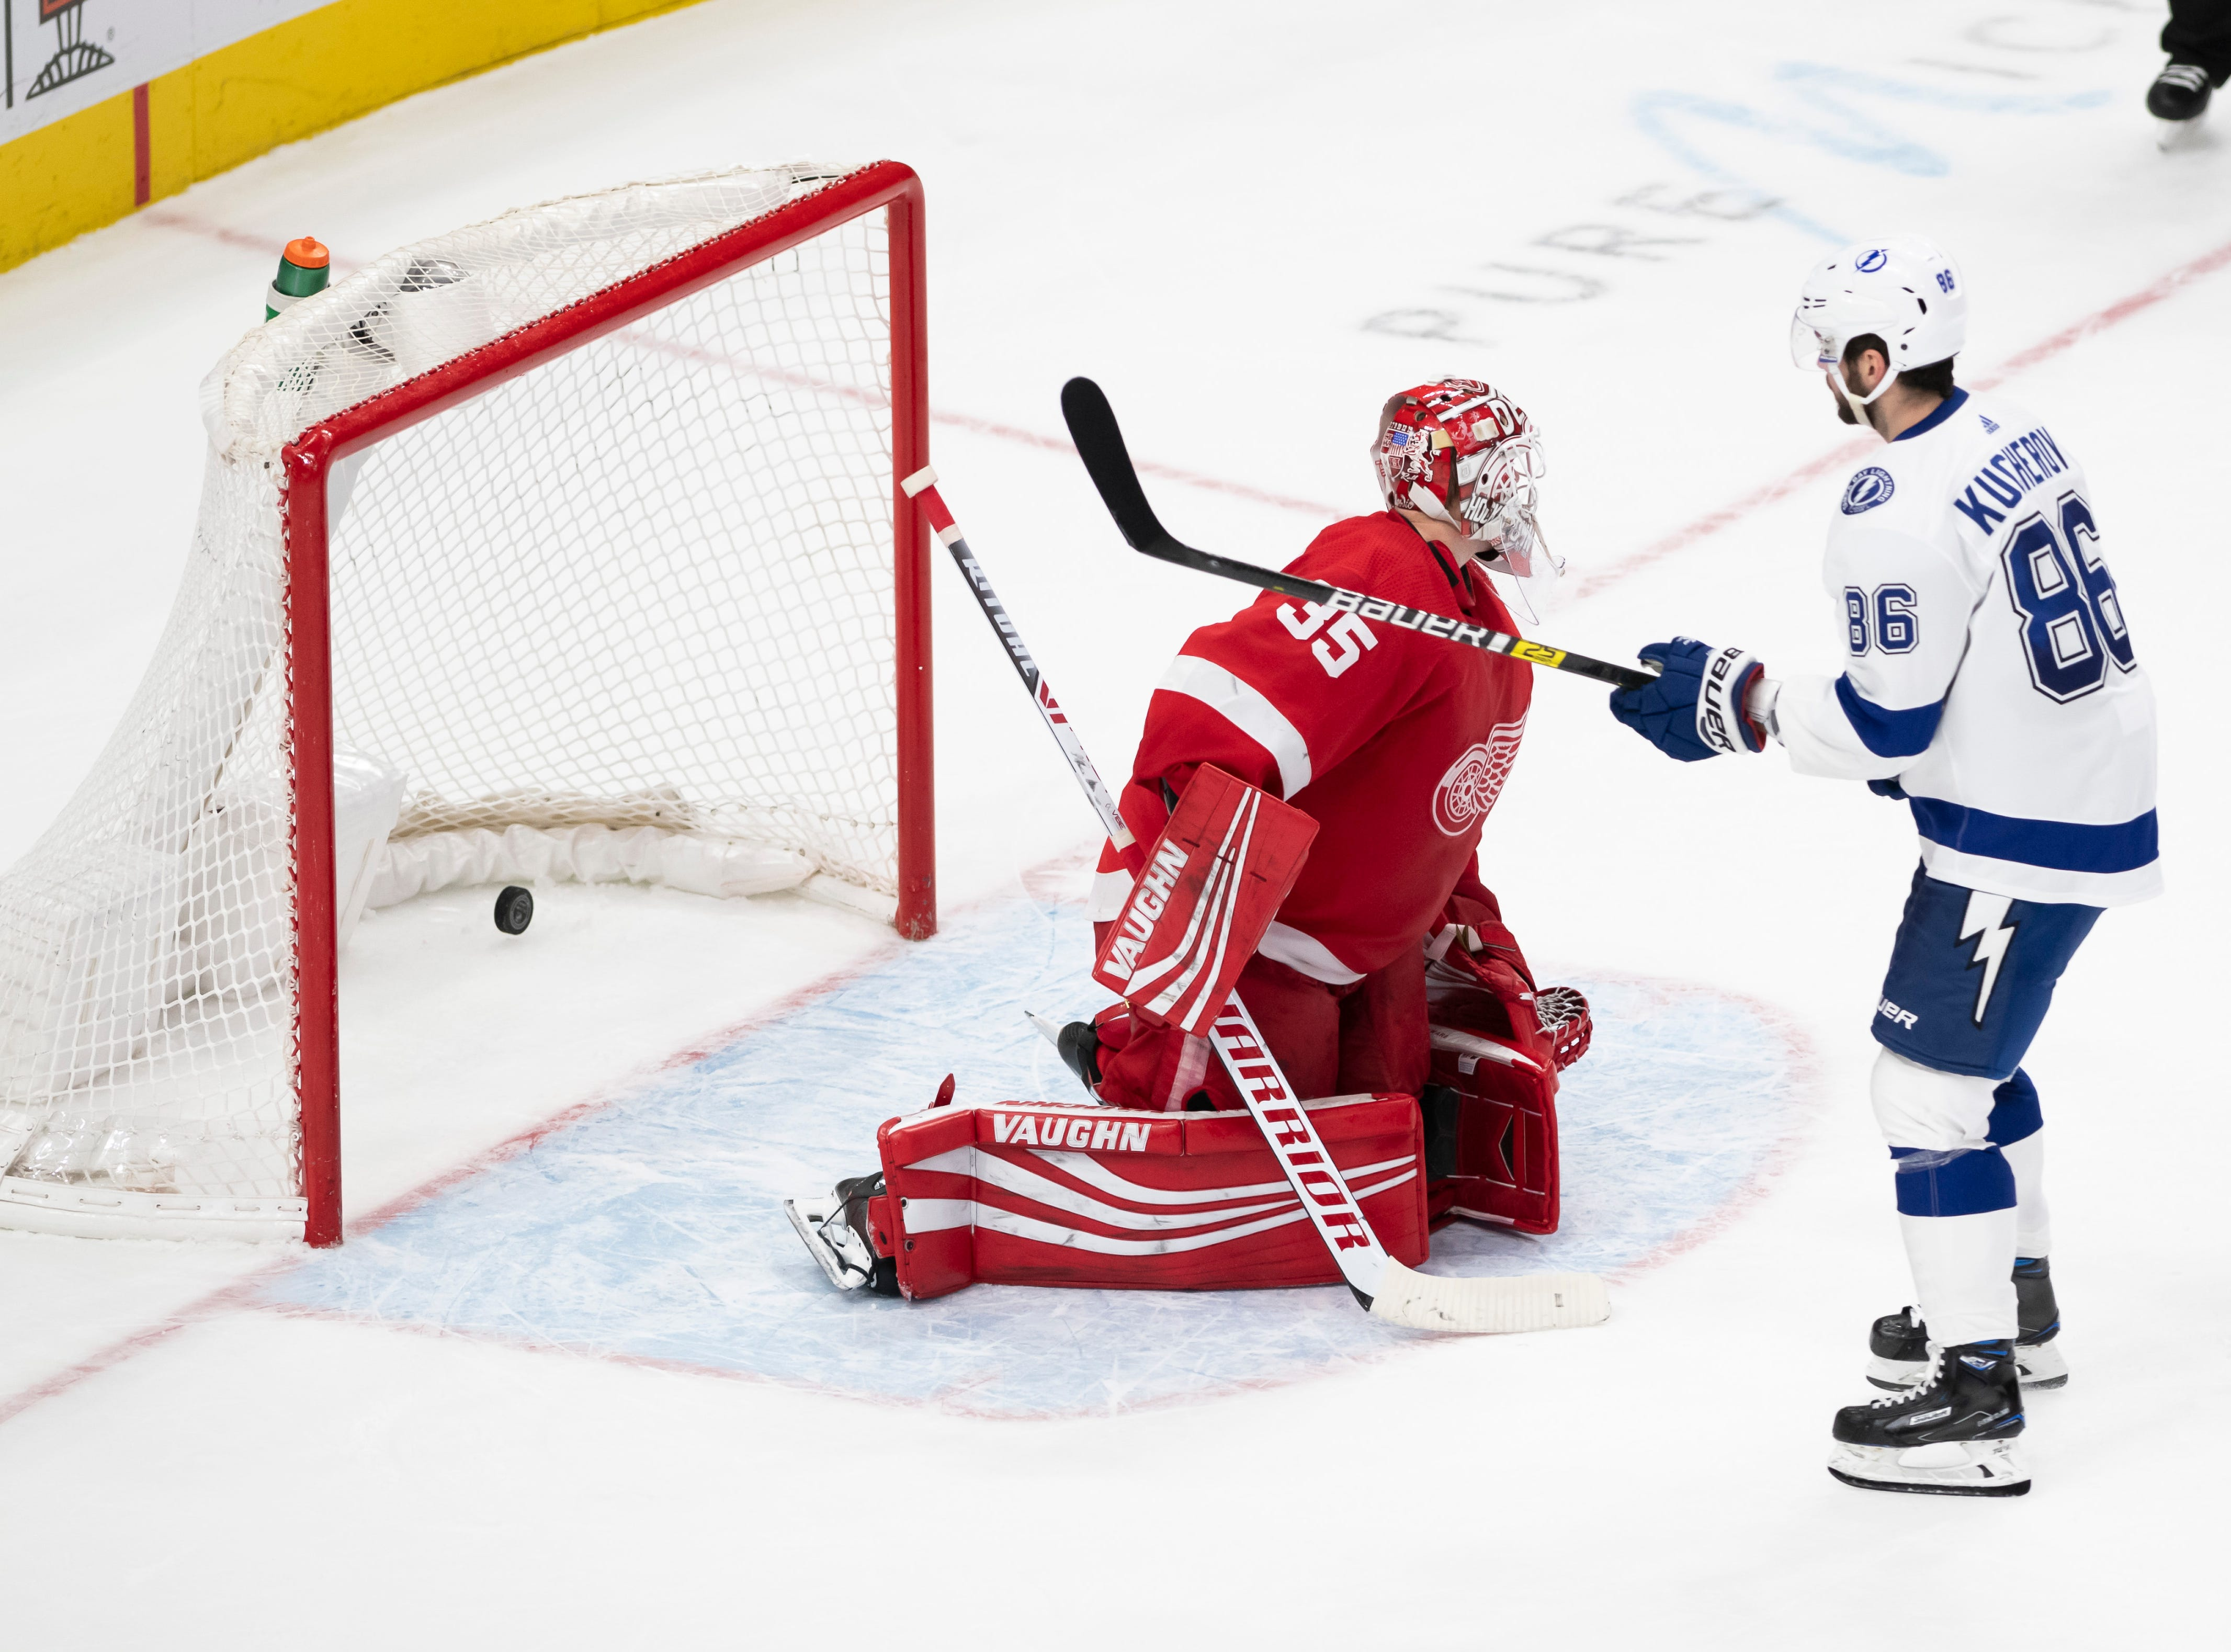 Tampa Bay right wing Nikita Kucherov sends the puck past Detroit goaltender Jimmy Howard for the winning goal during the shoot out.